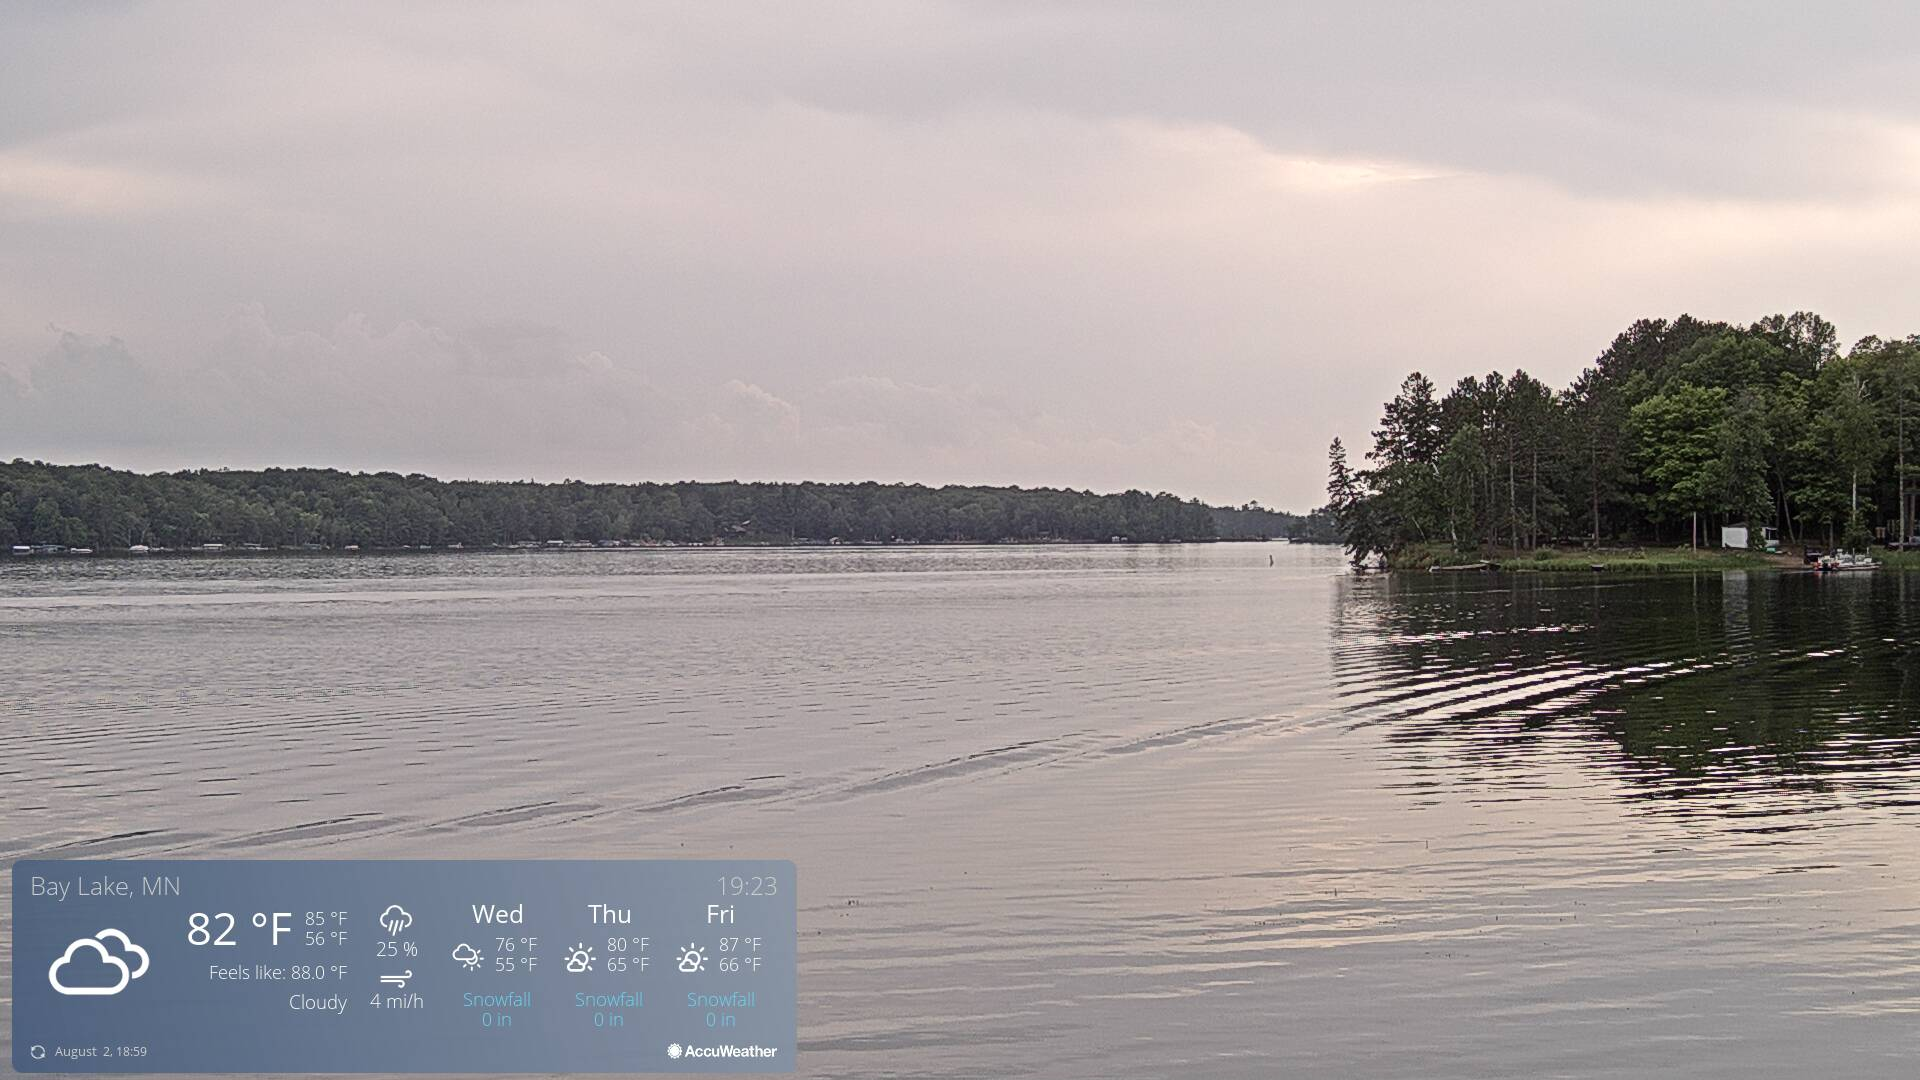 Bay Lake Webcam Deerwood, MN